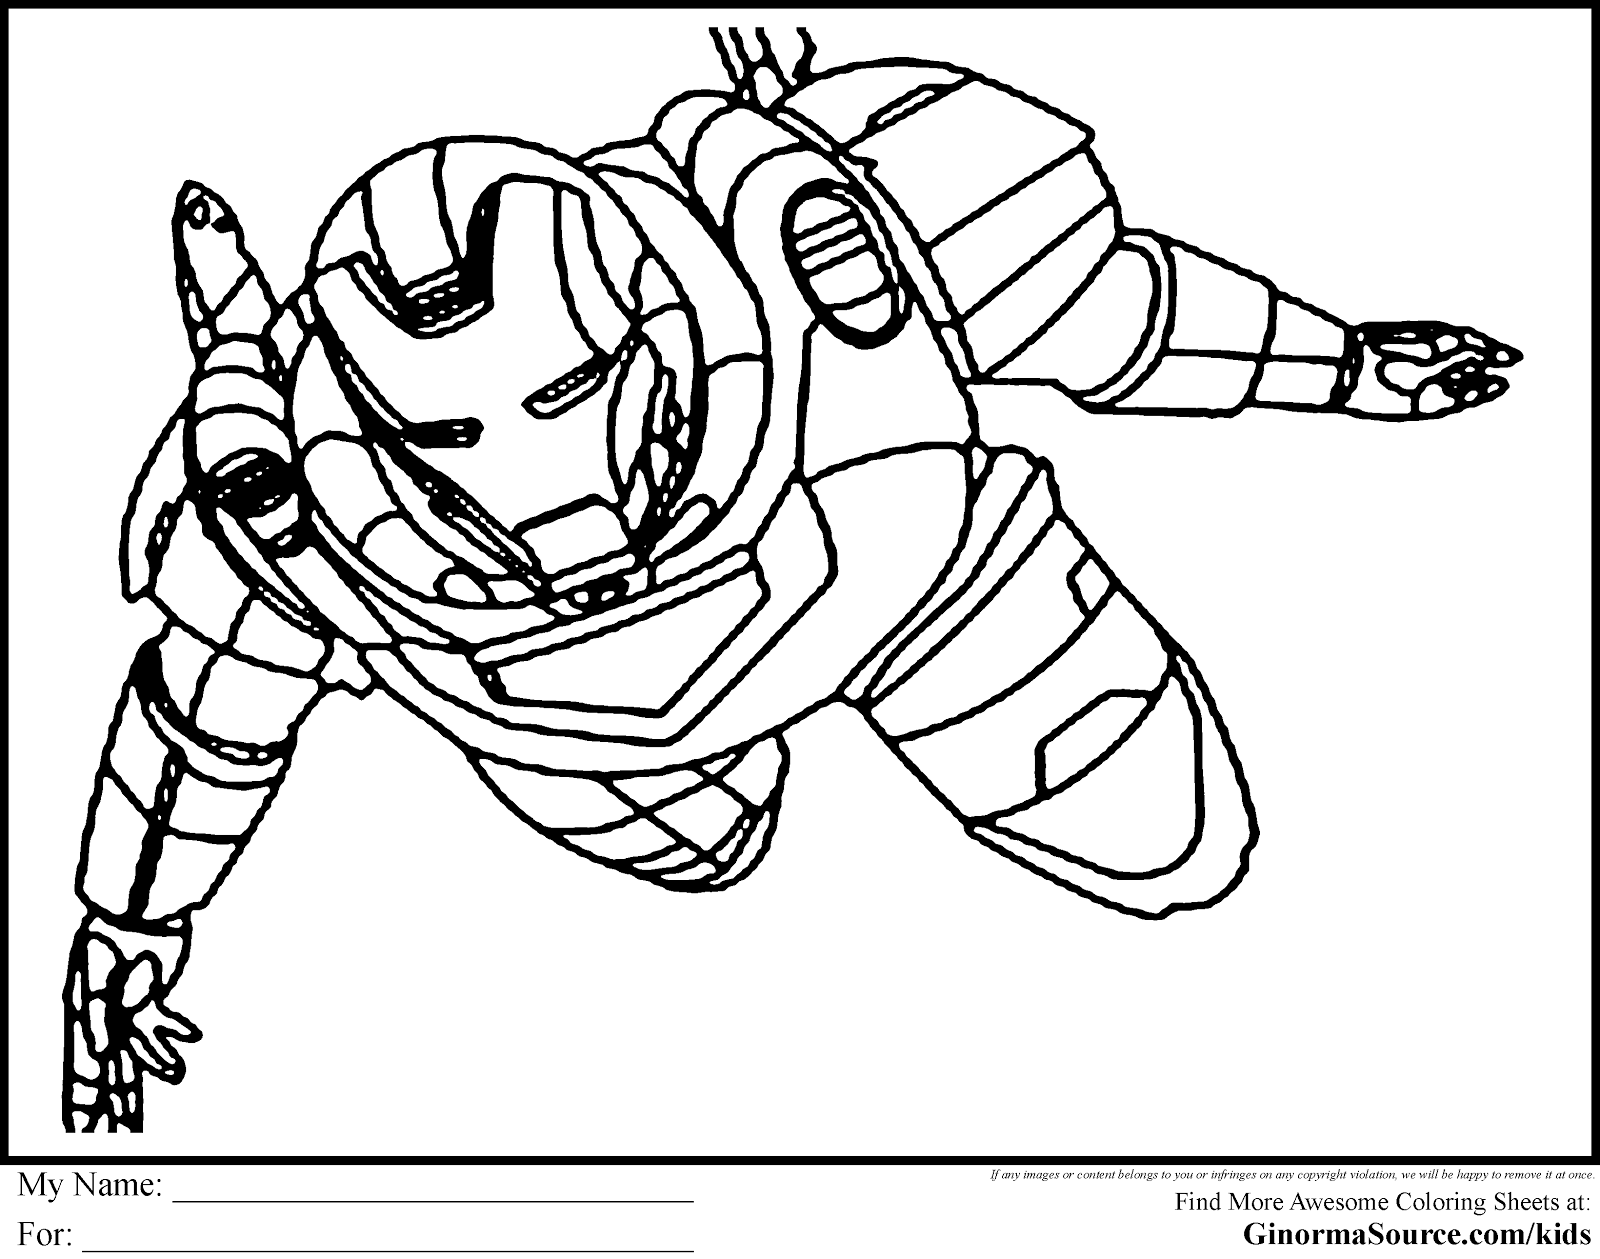 Super Hero Coloring Pages | mugudvrlistscom